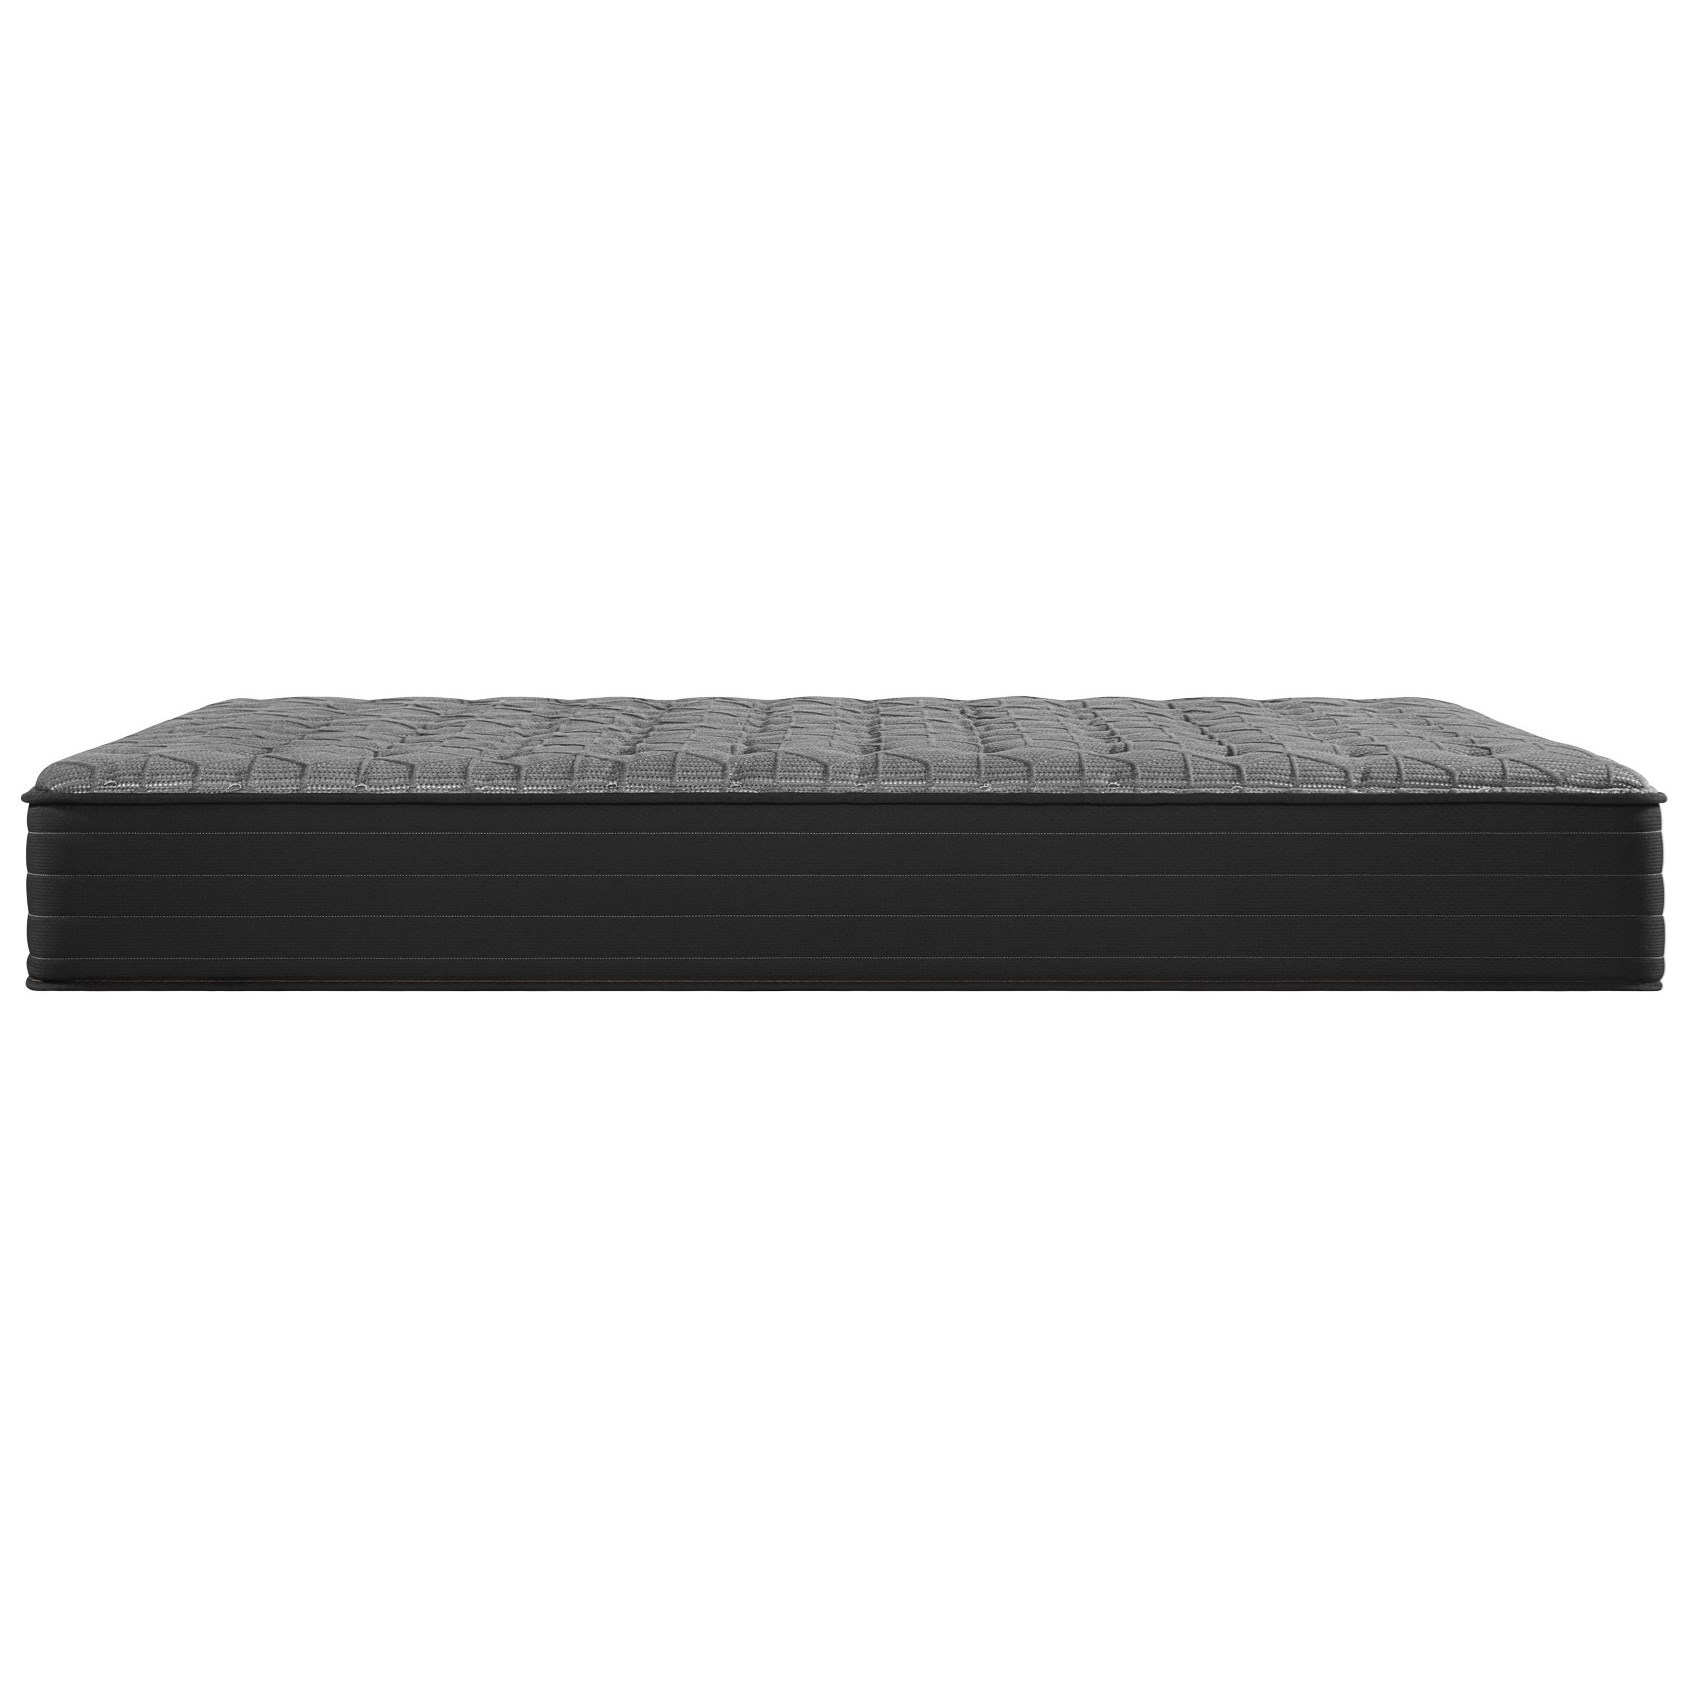 Beech Street Plush Queen Plush Mattress by Sealy at Suburban Furniture